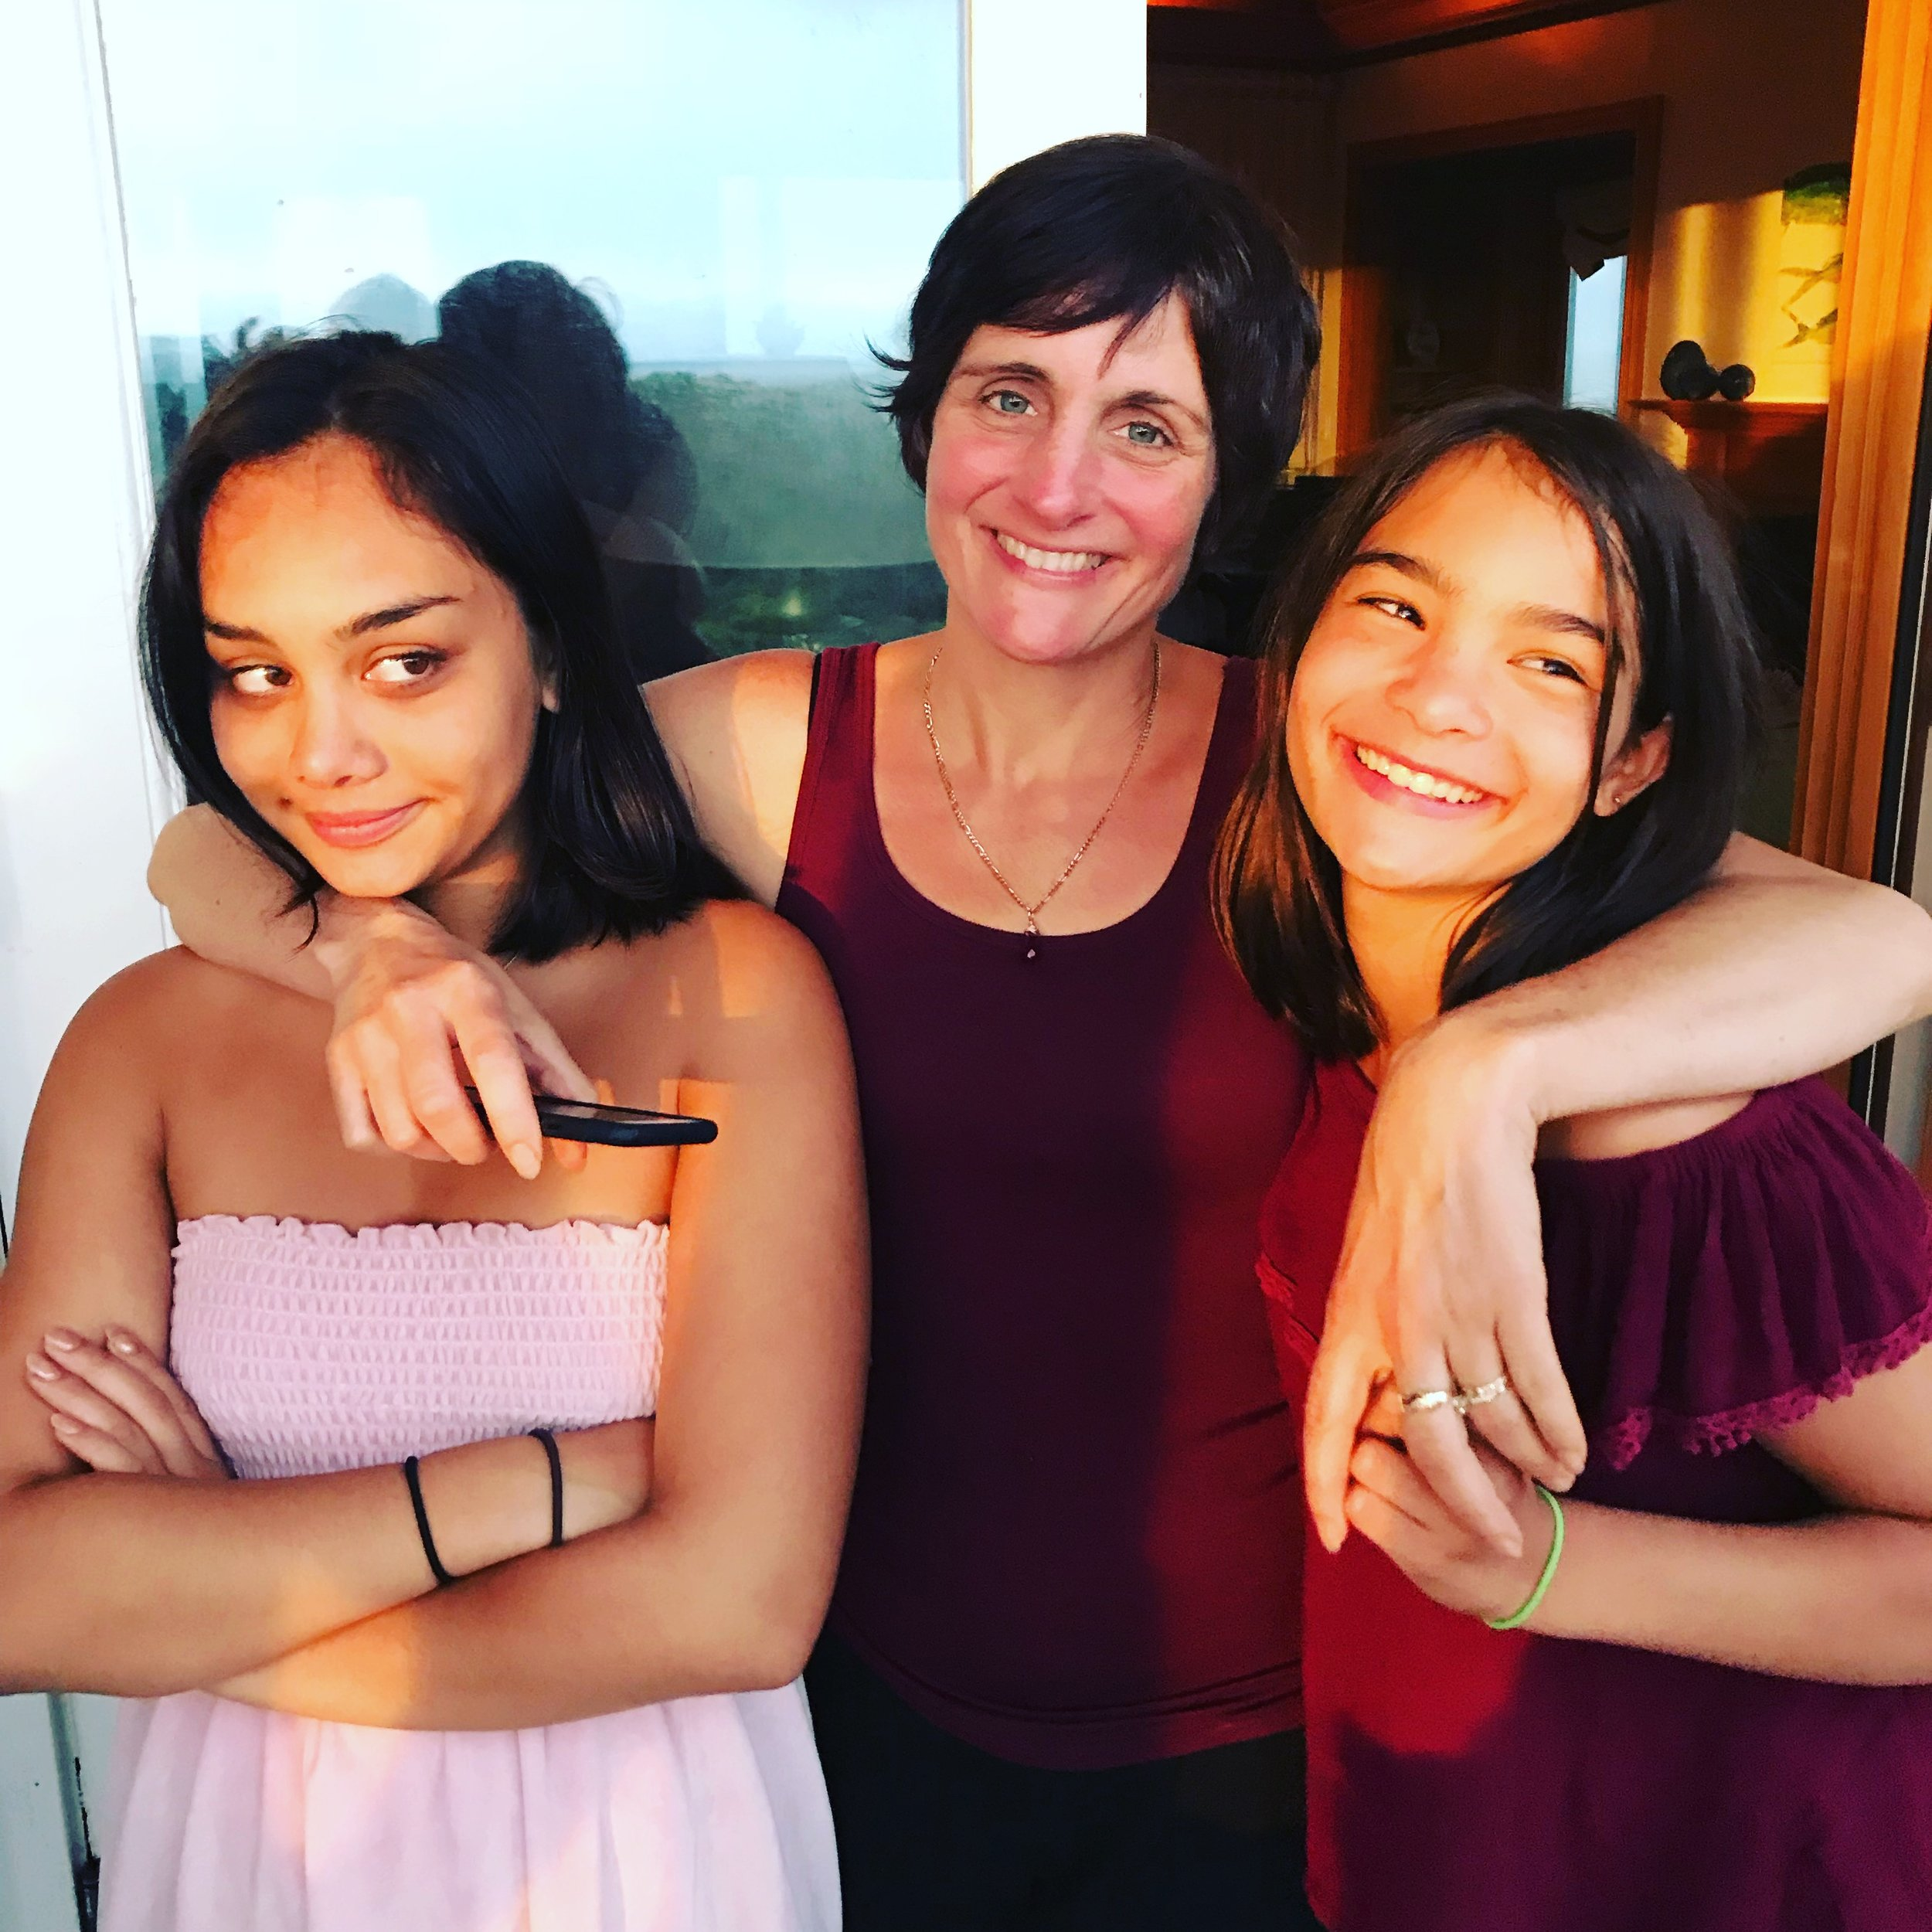 Summer 2018, me and the girls -